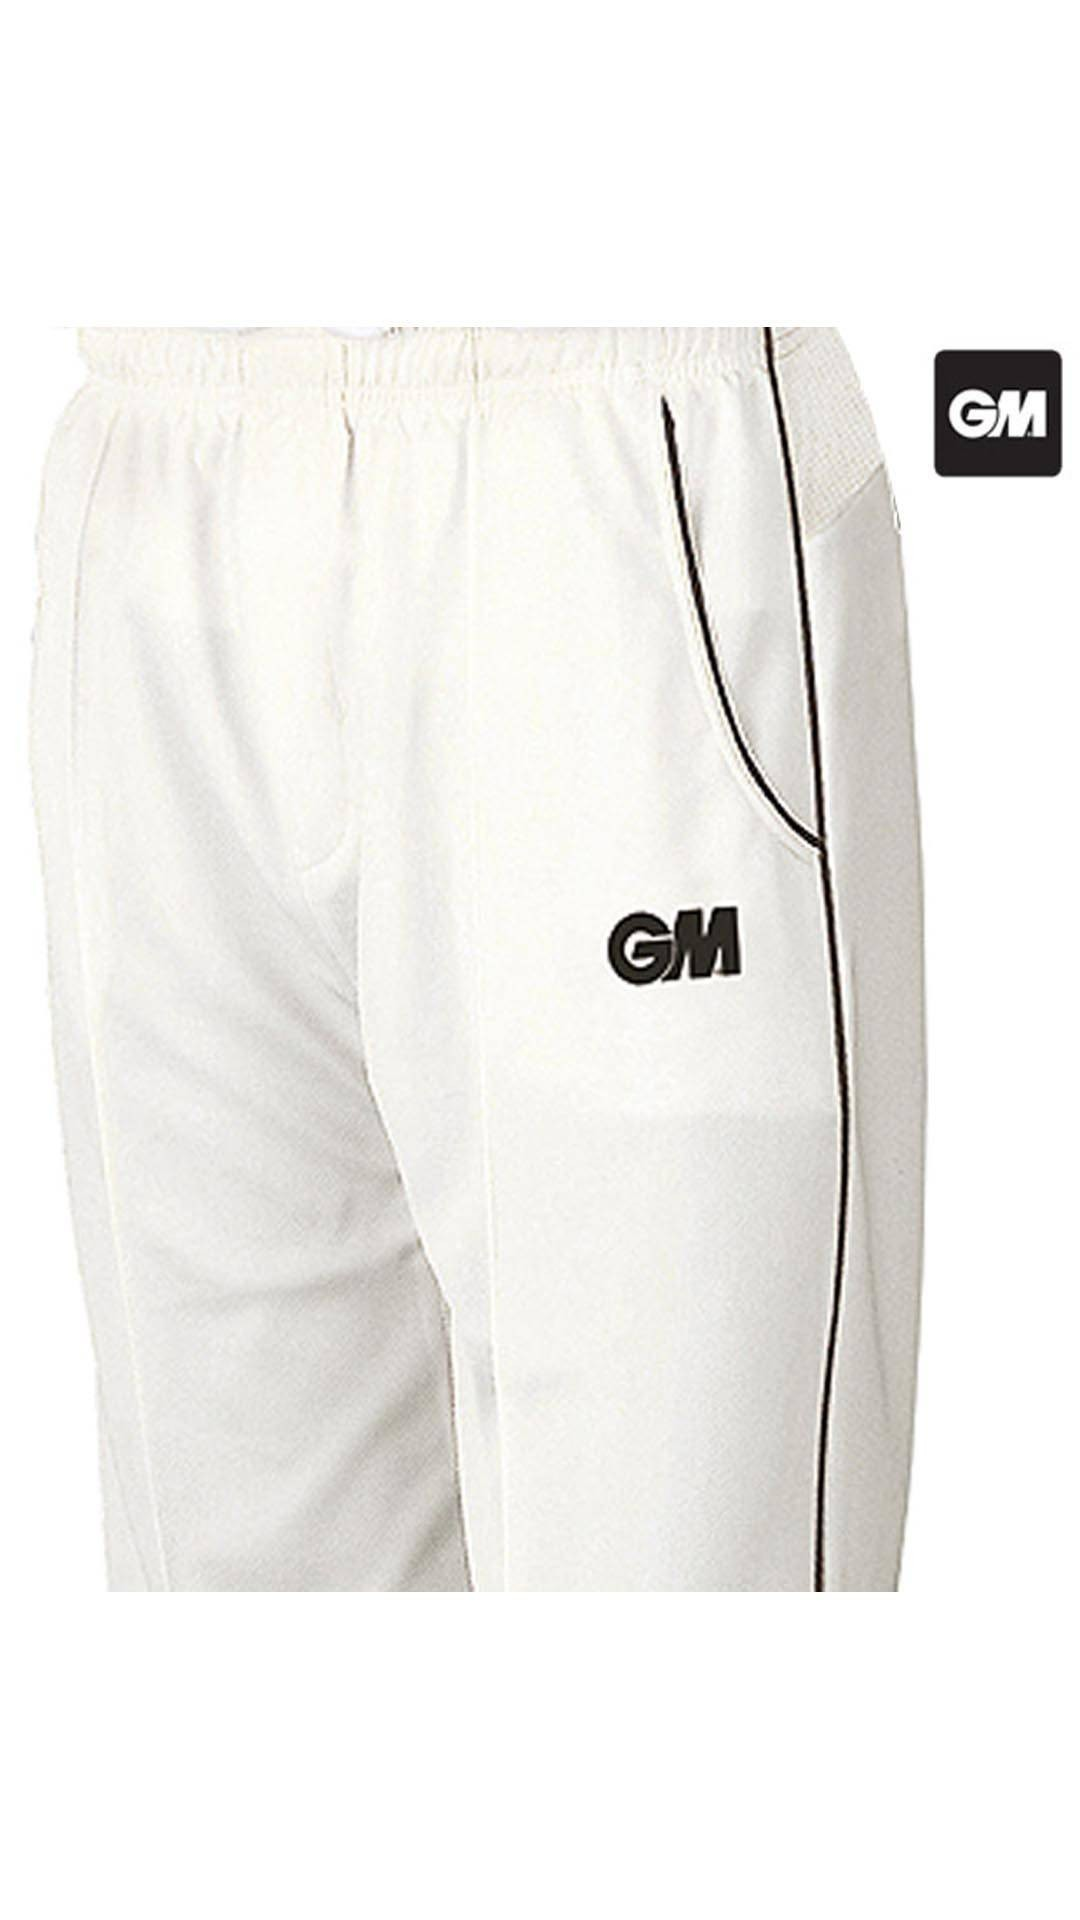 GM 7130 Cricket Trouser